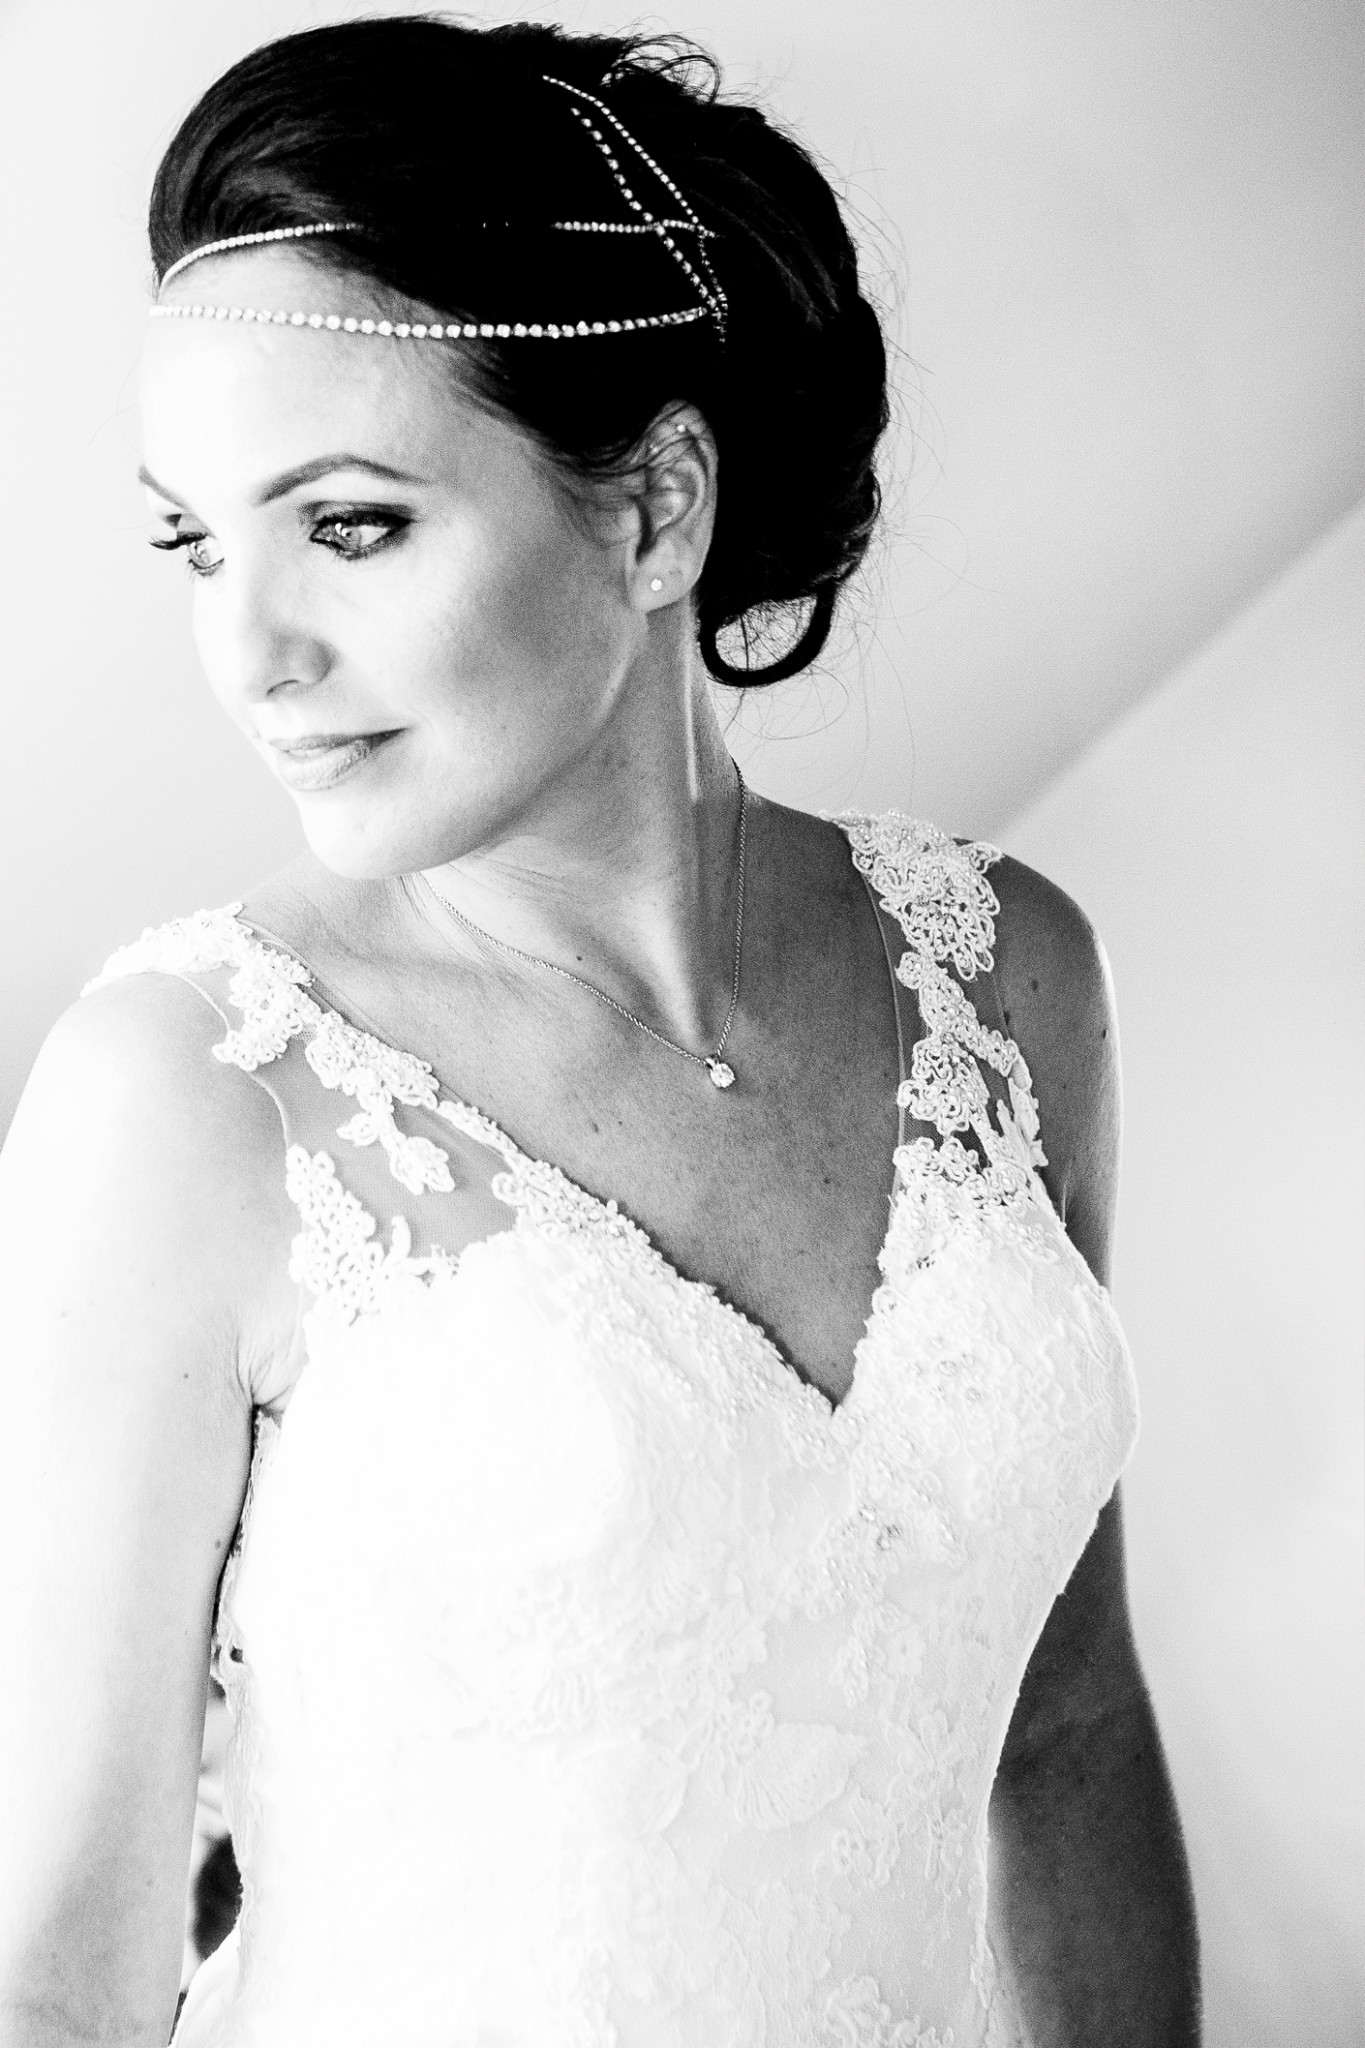 the-bride-before-the-wedding-ceremony-at-The-Oddfellows-Hotel-Chester-in-Cheshire